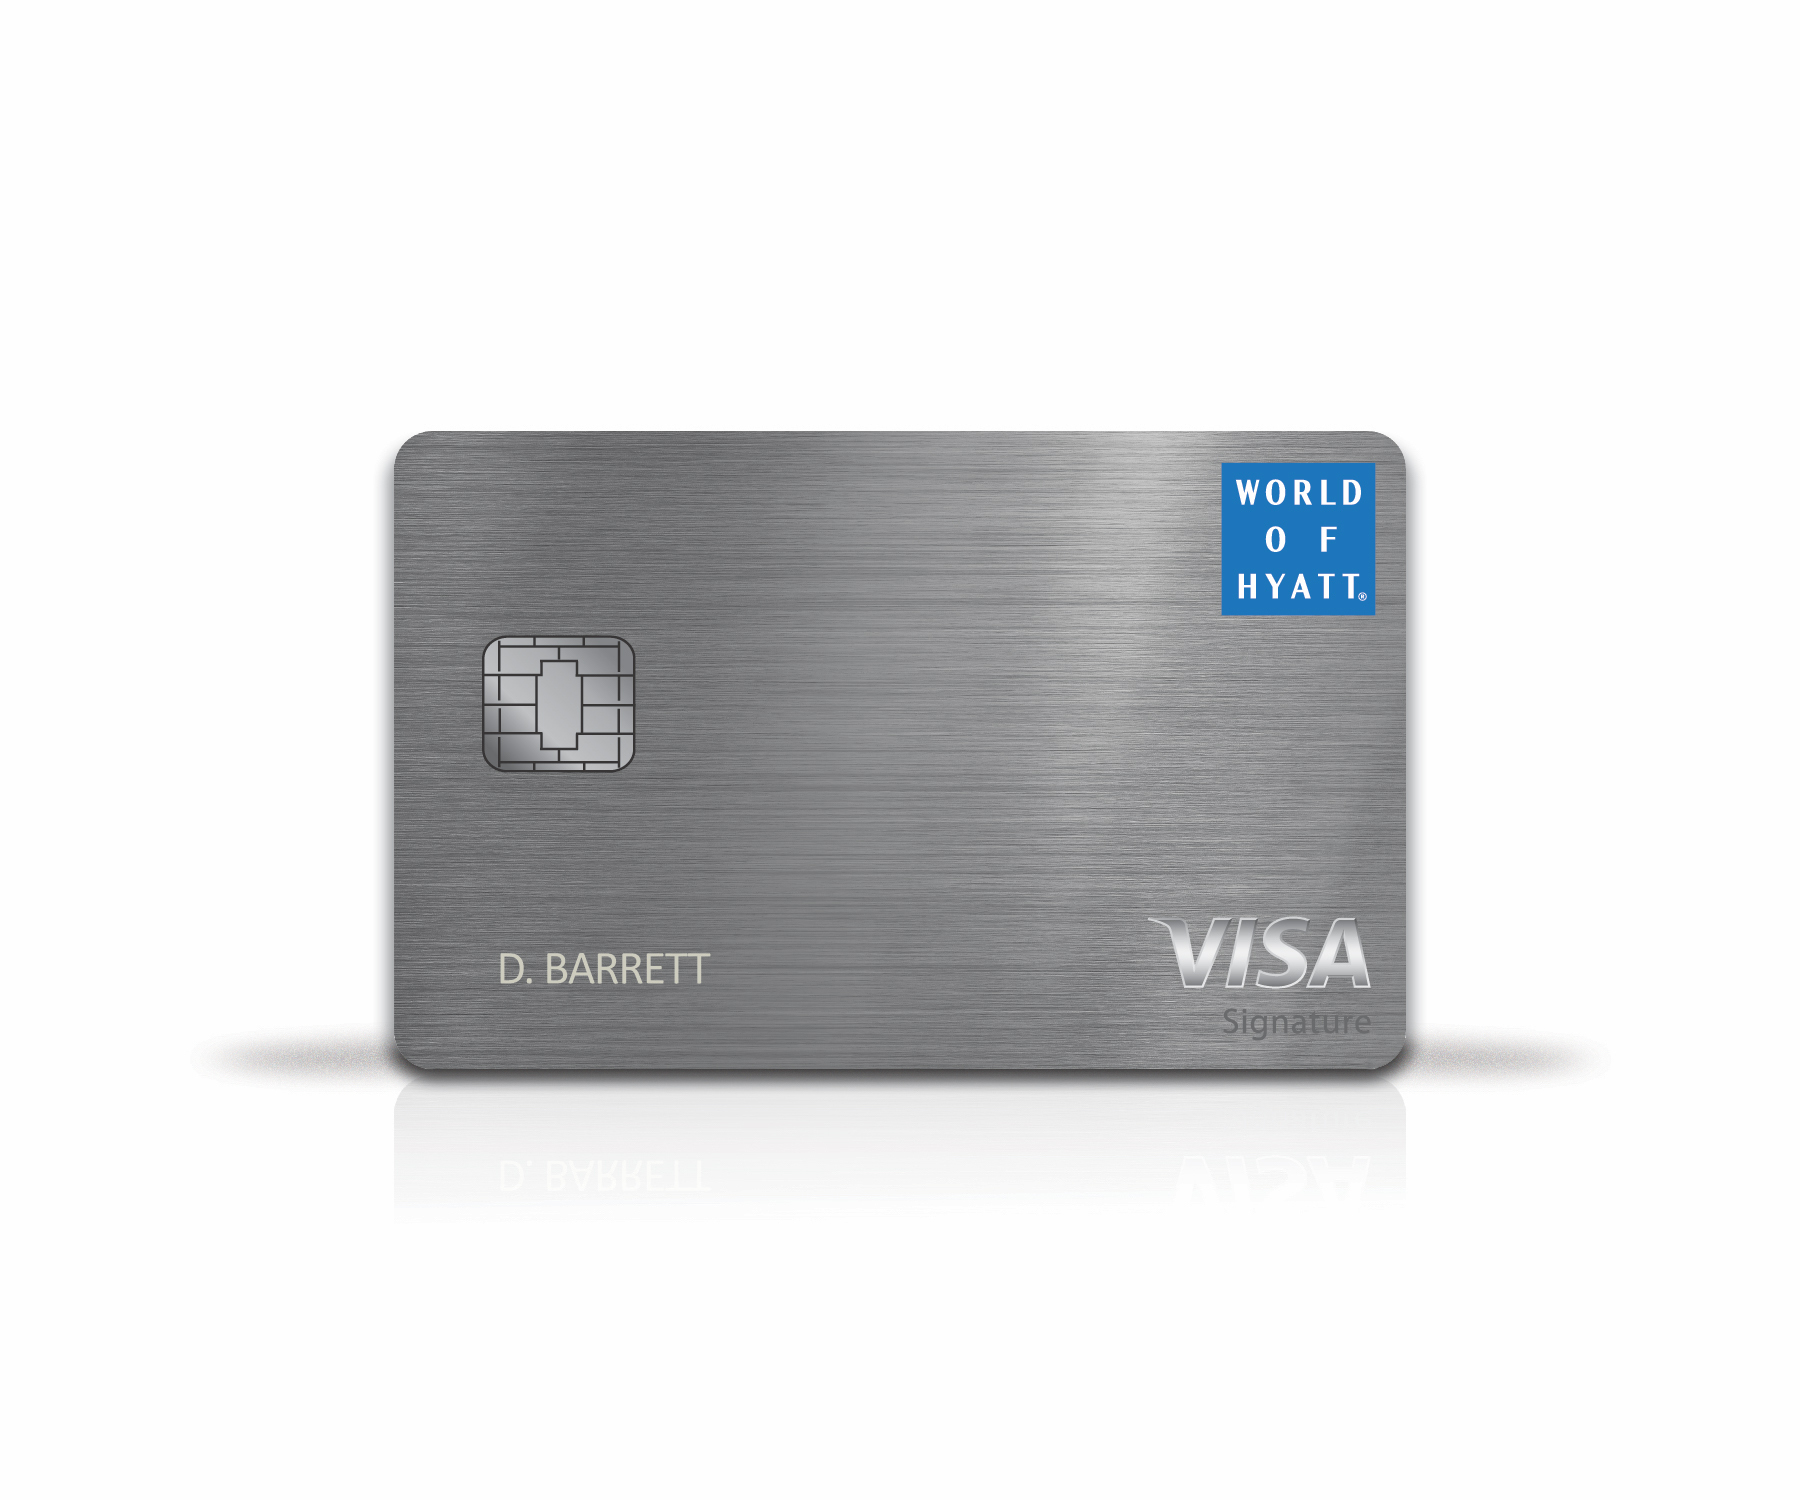 Chase and hyatt introduce the new world of hyatt credit card chase and hyatt introduce the new world of hyatt credit card business wire colourmoves